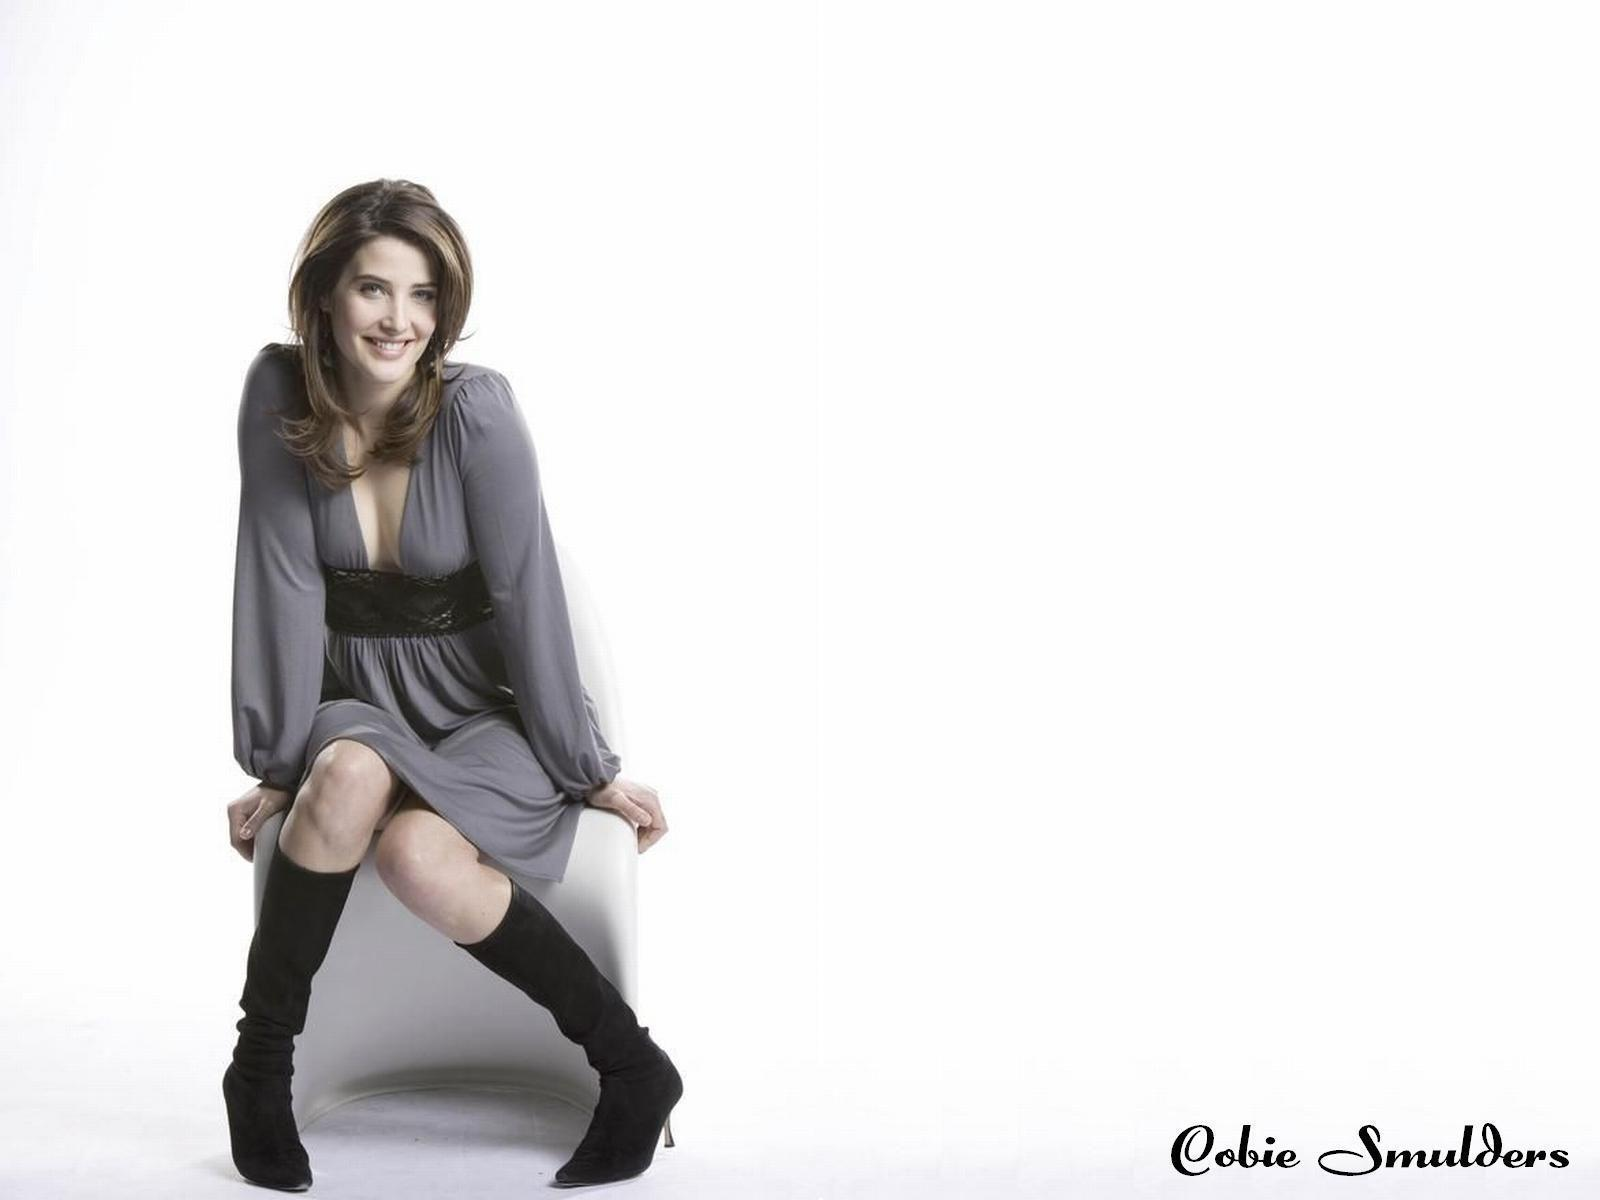 cobie smulders wallpapers - photo #1